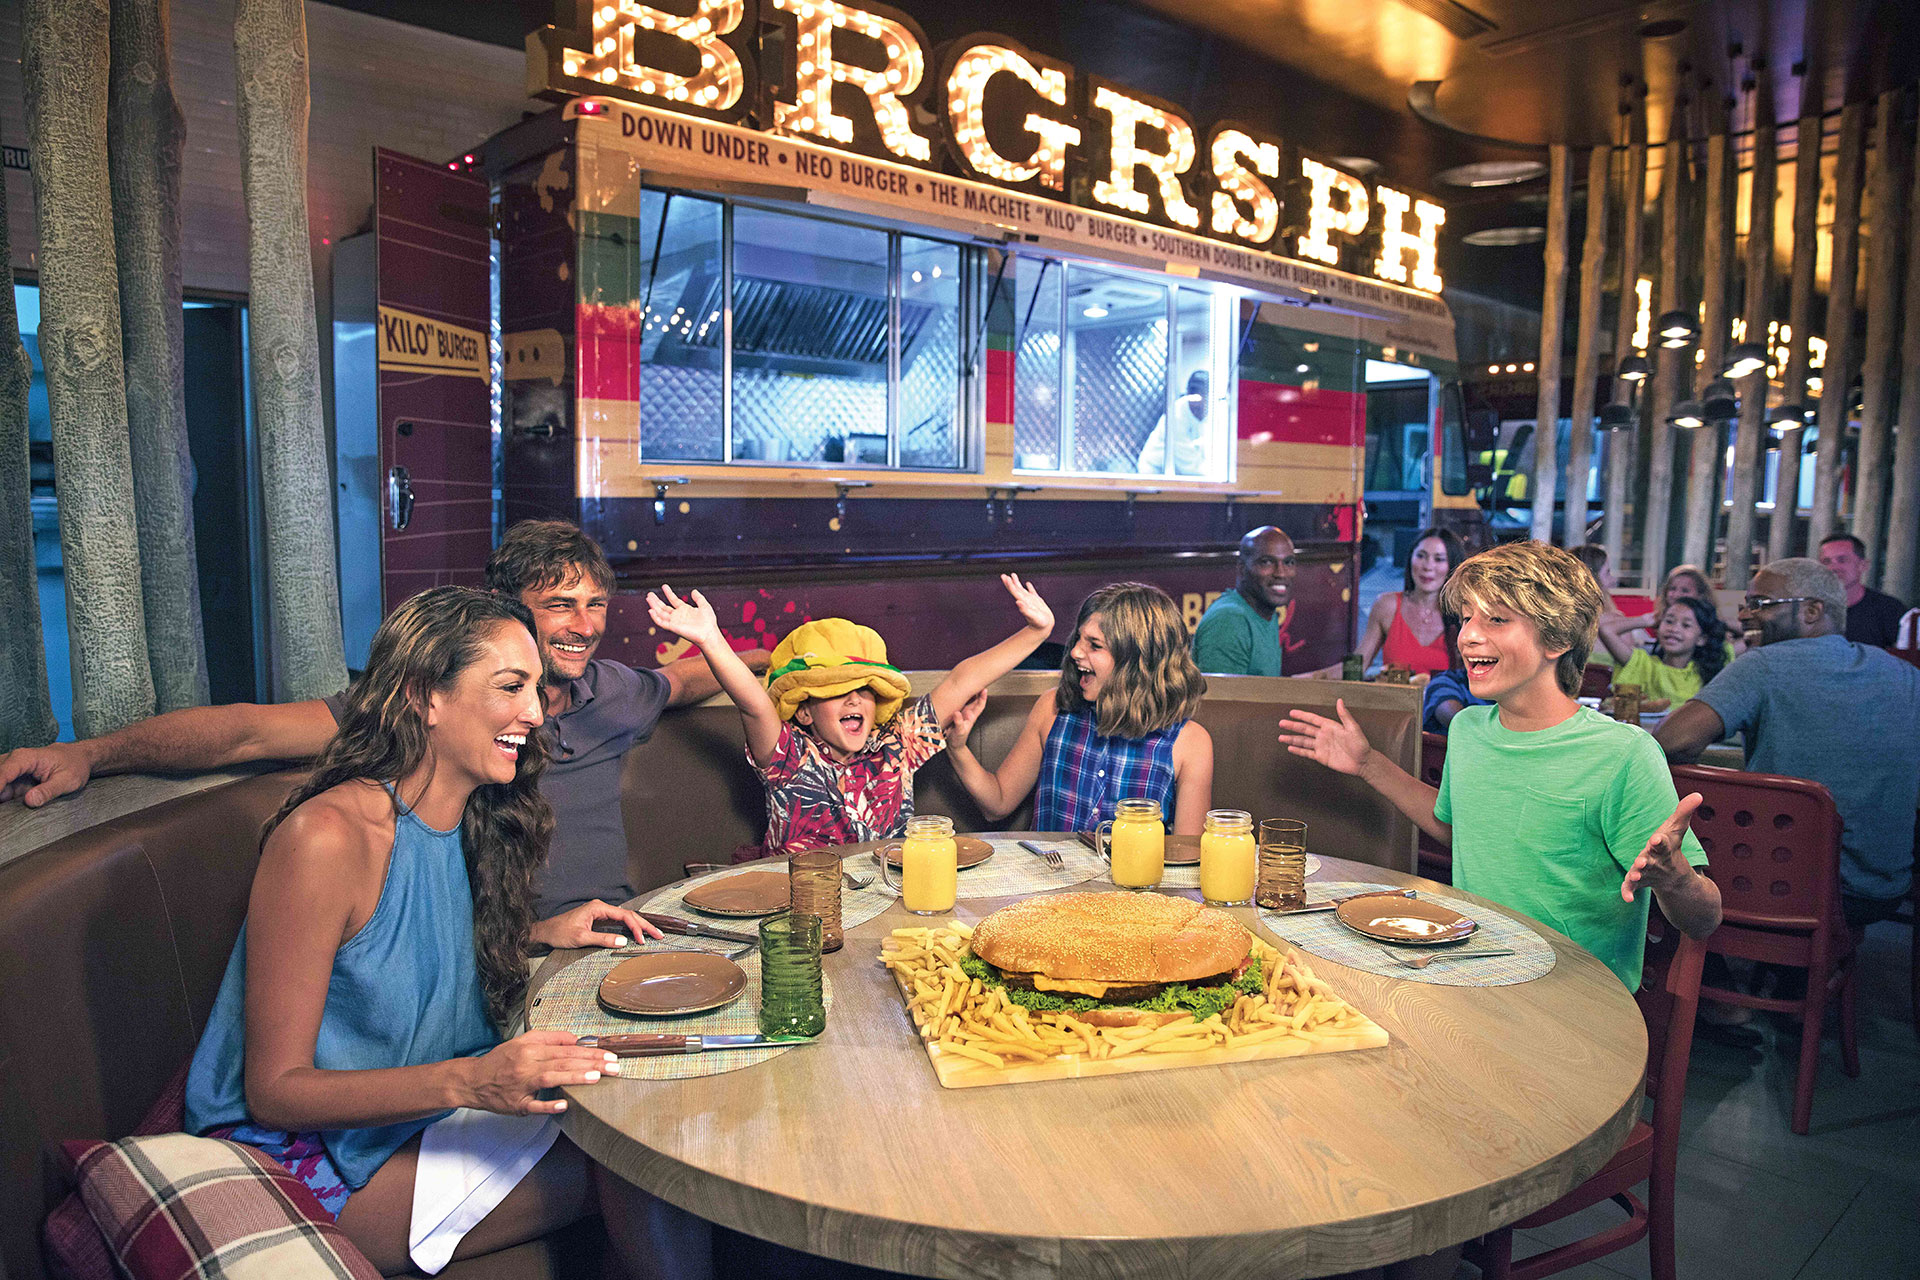 BRGRS at Nickelodeon Hotels & Resorts, Punta Cana in the Dominican Republic